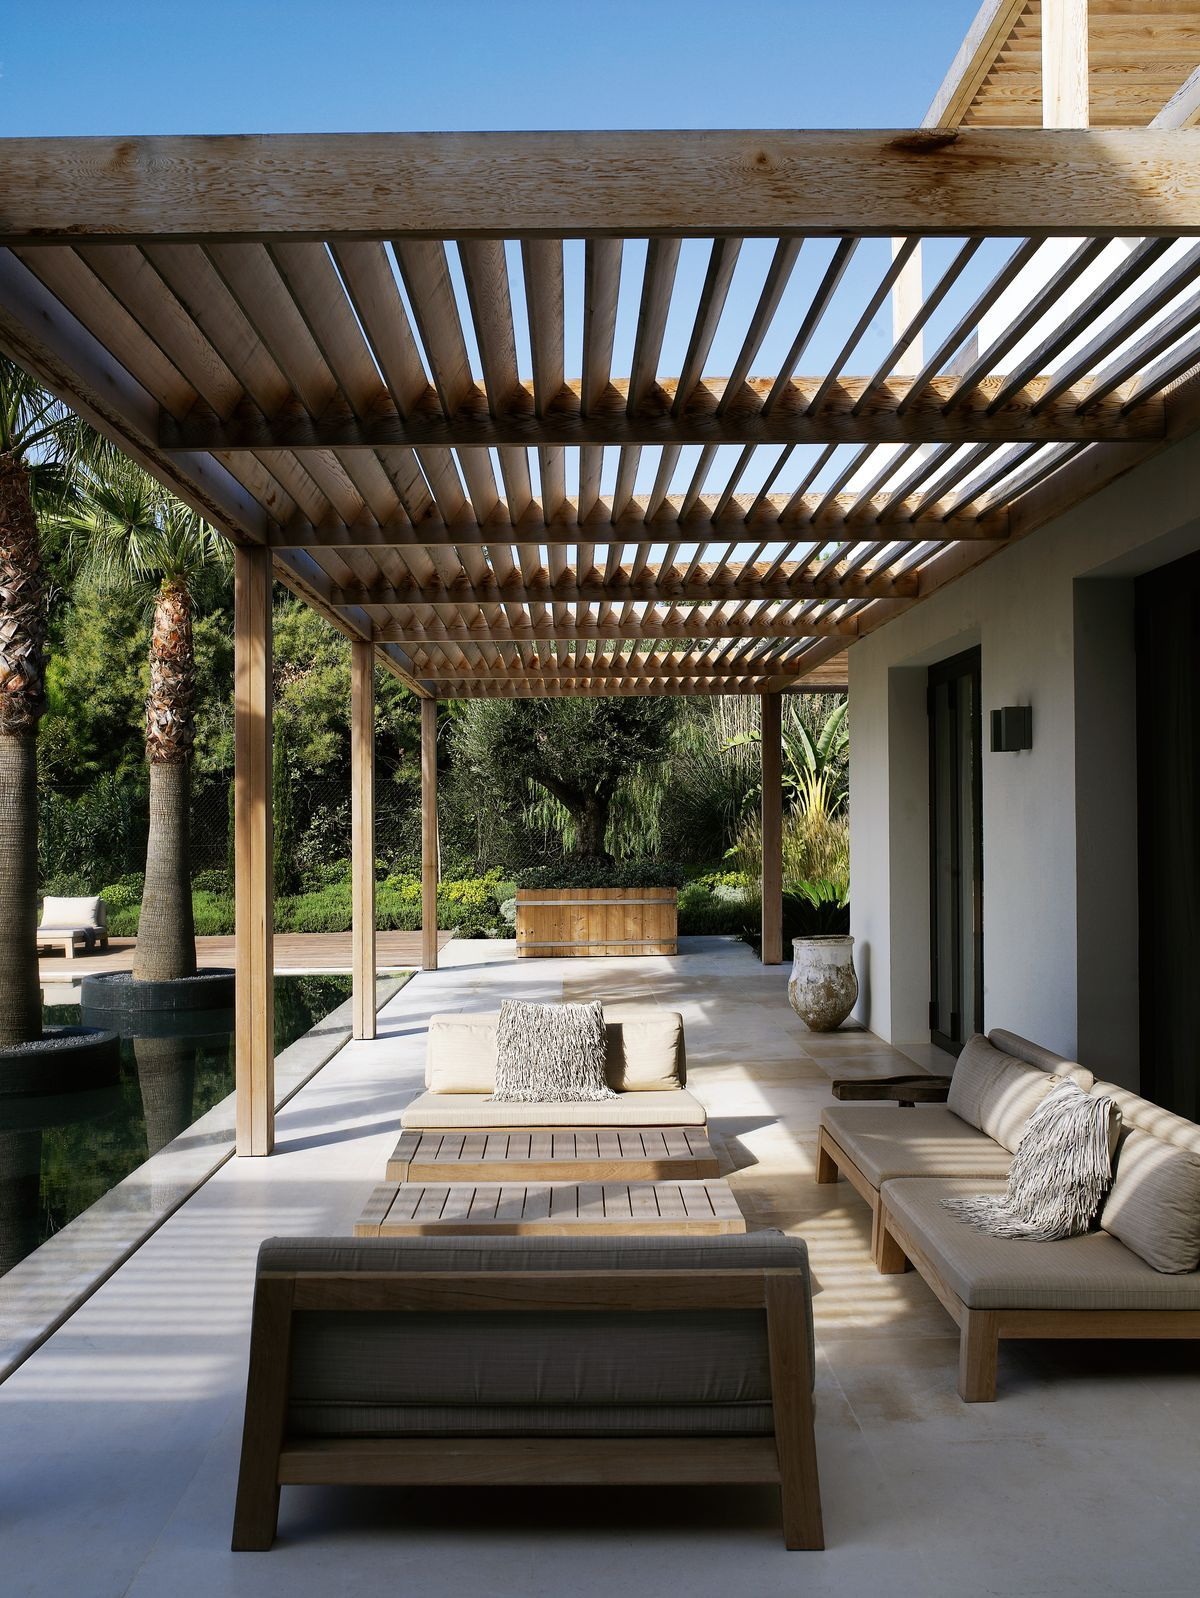 Modern poolside pergola over a concrete patio with